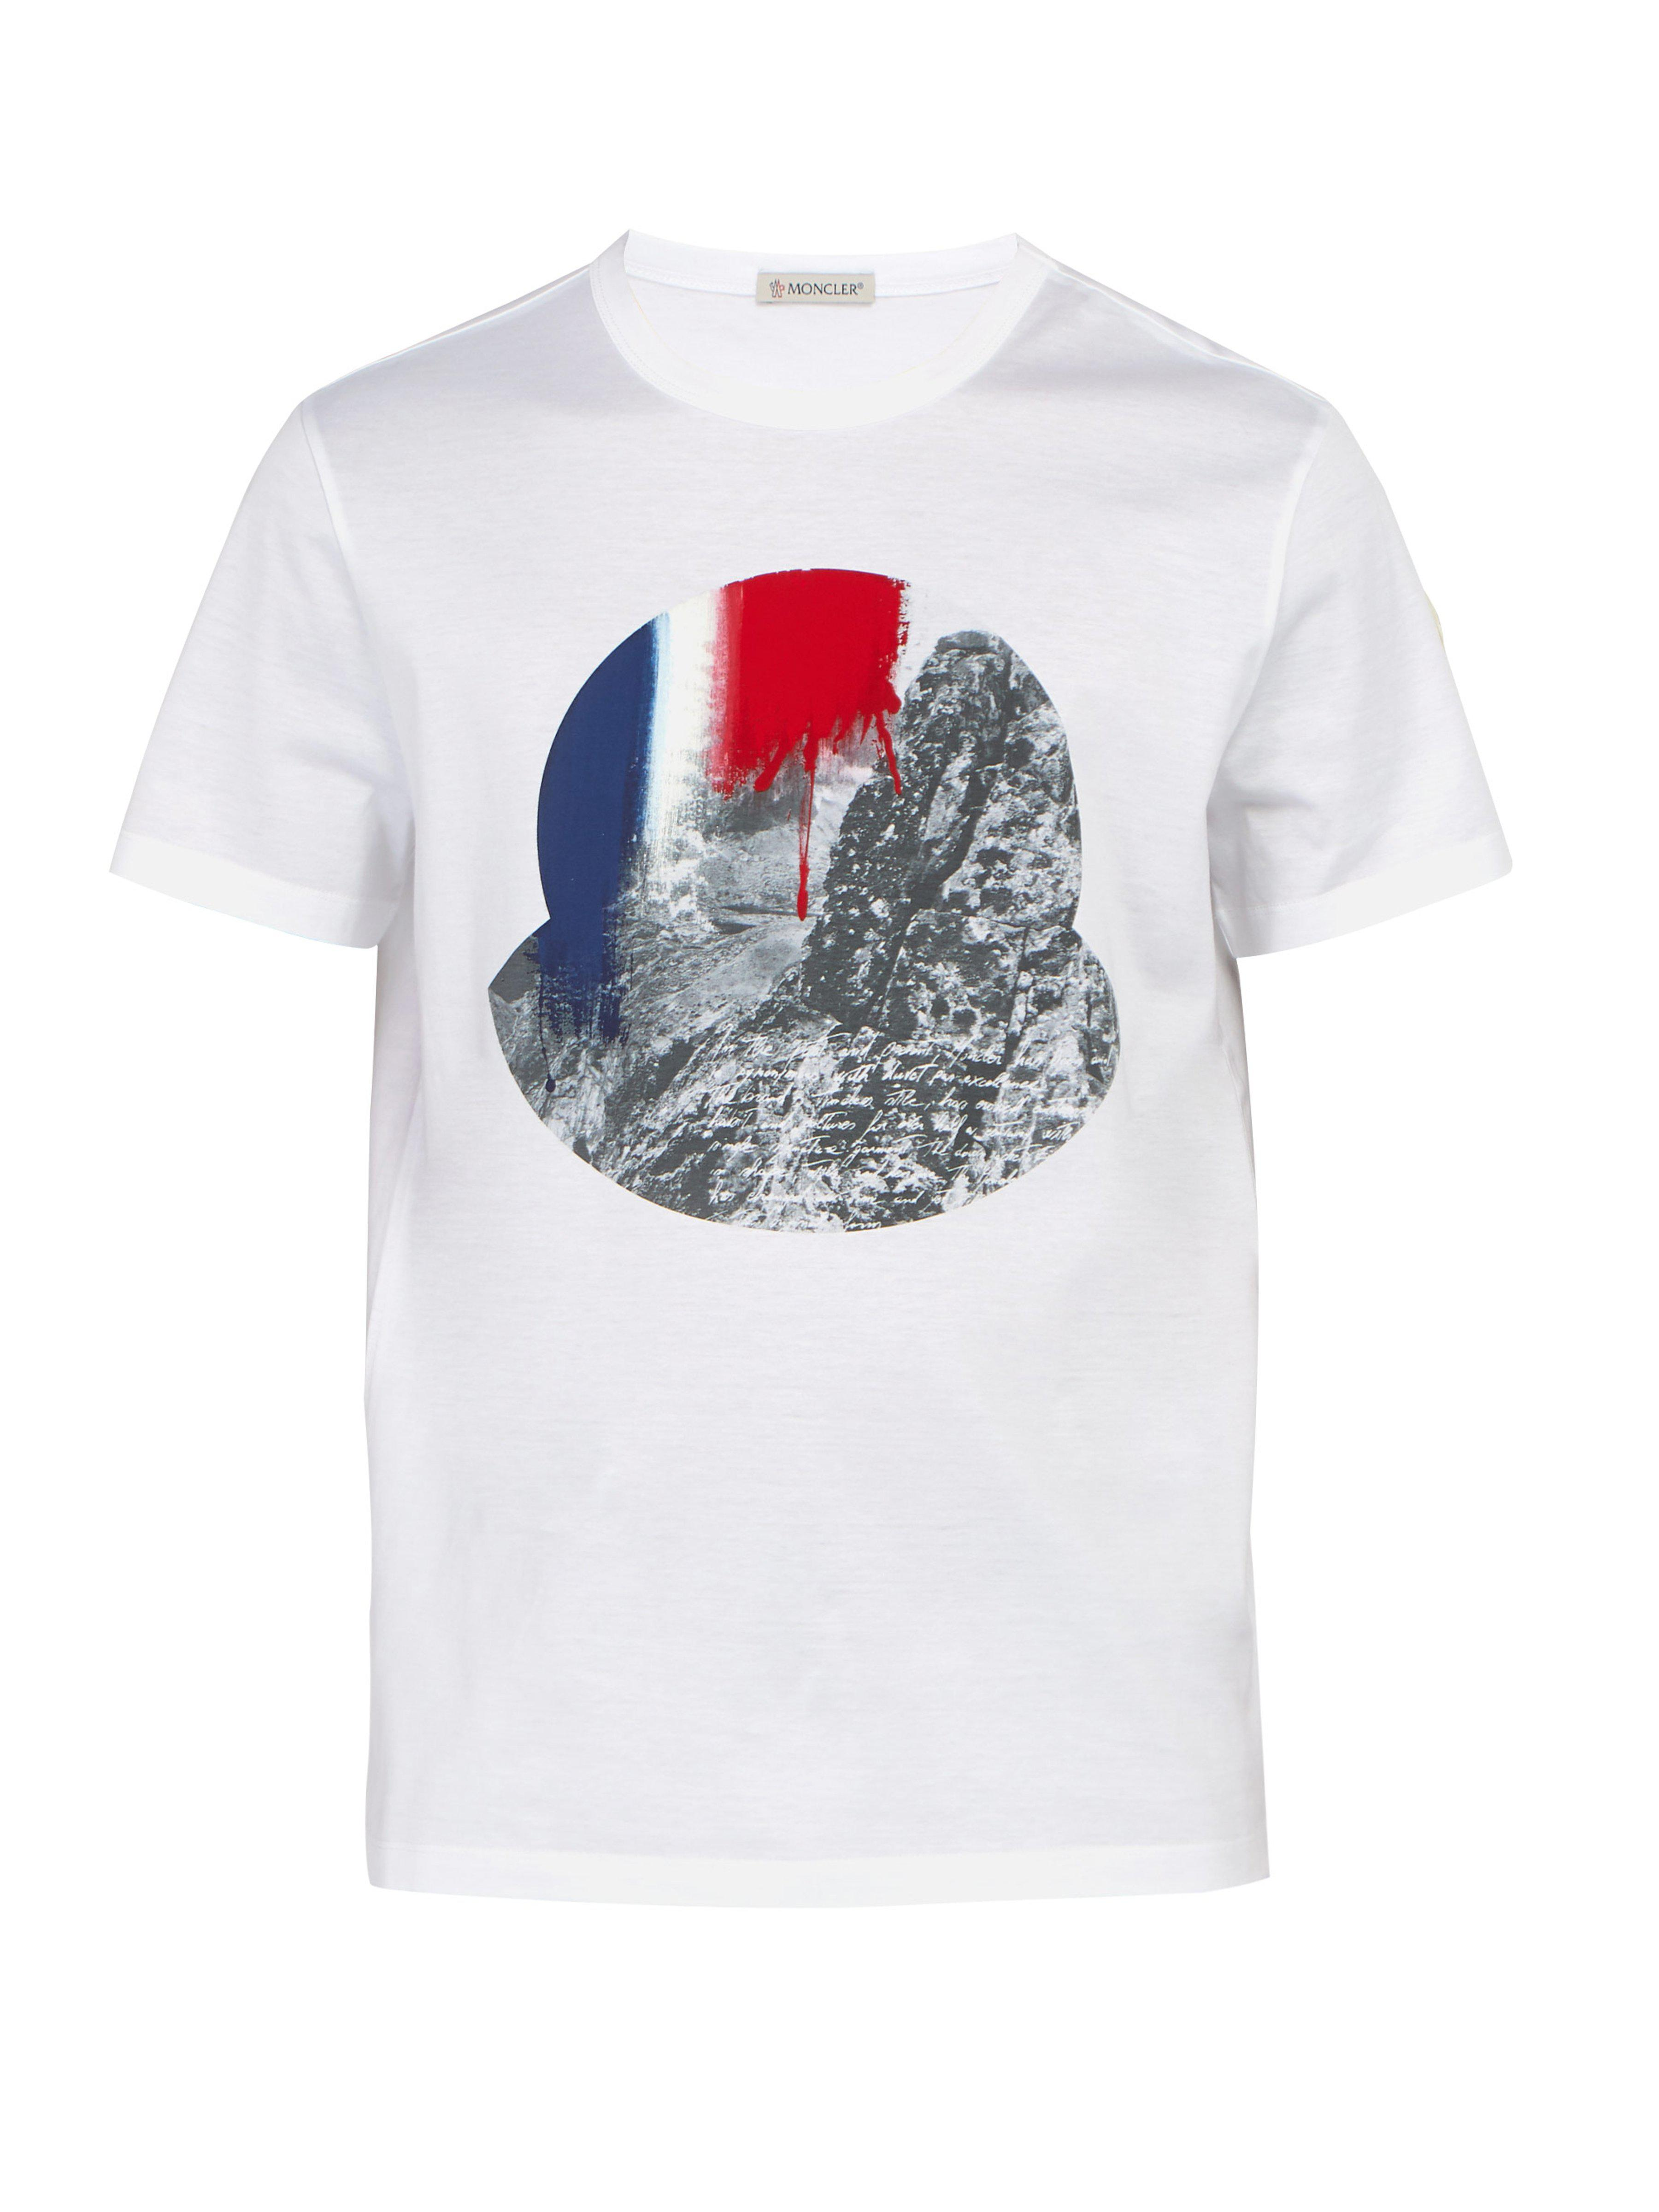 3e3e9c3a5 Moncler T-shirt in White for Men - Lyst